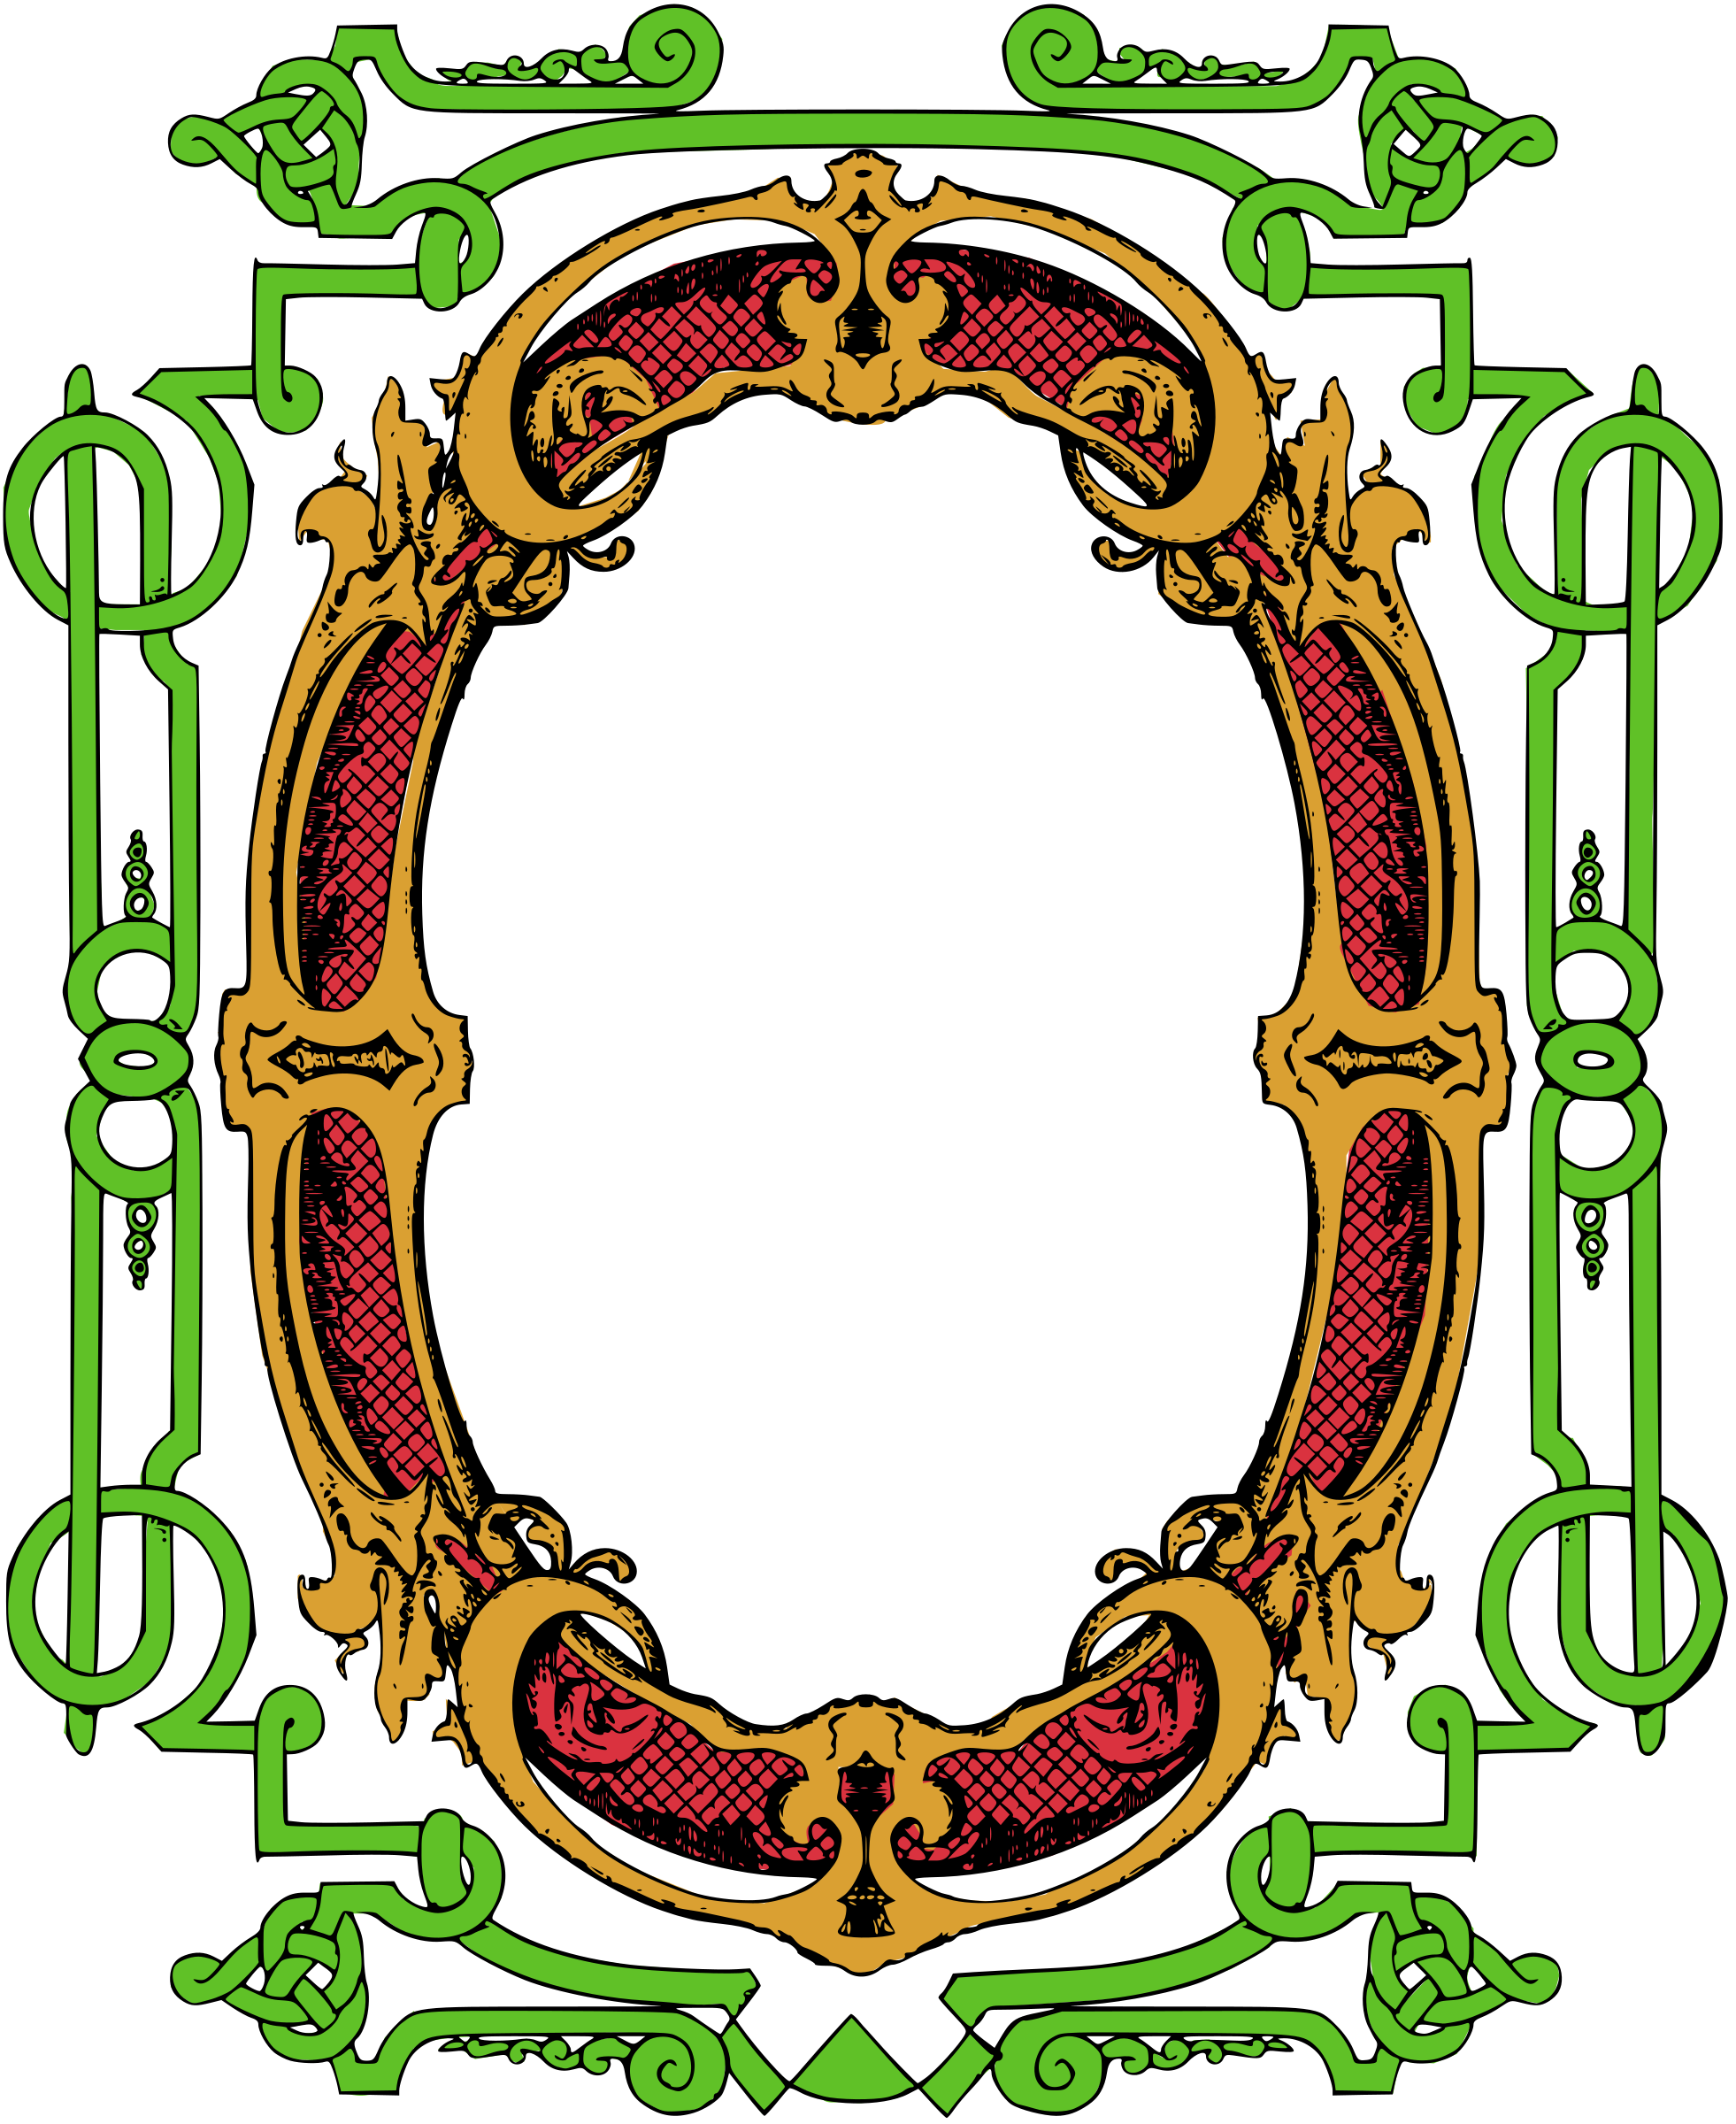 Circle Ornate Frame - Colour Remix by j4p4n